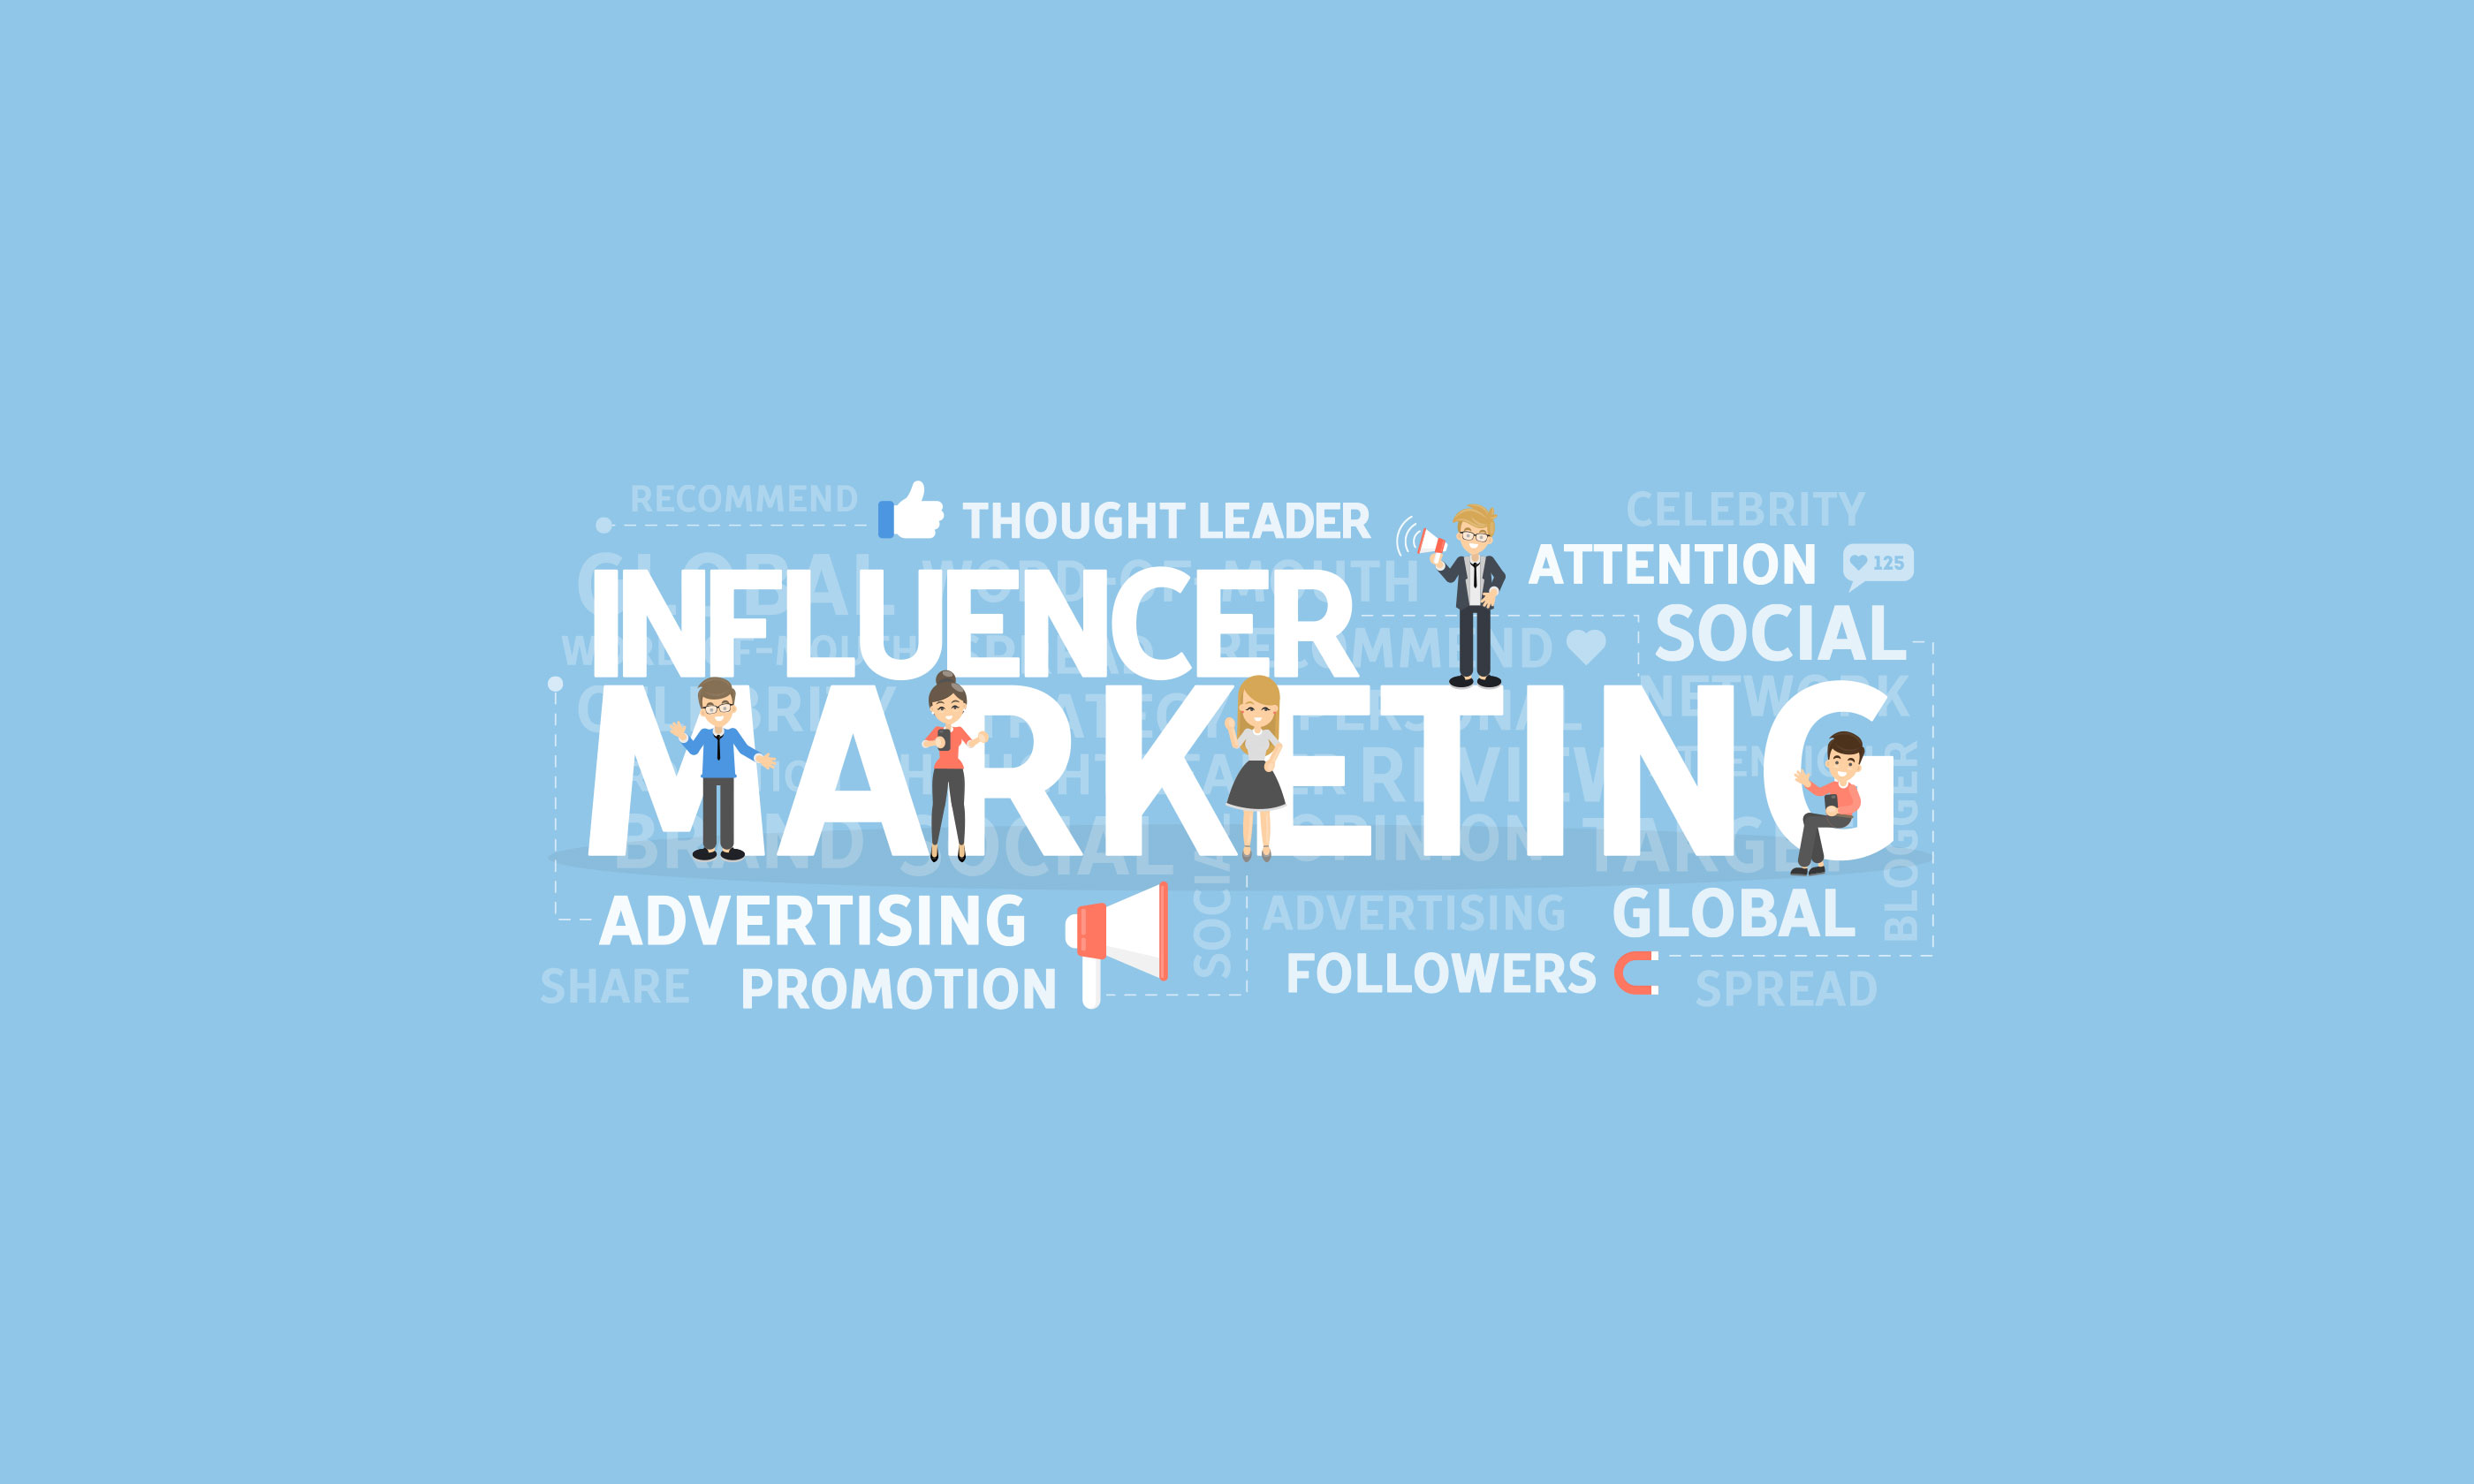 Influencer Marketing Slider - Advertising, Promotion, Social, Share